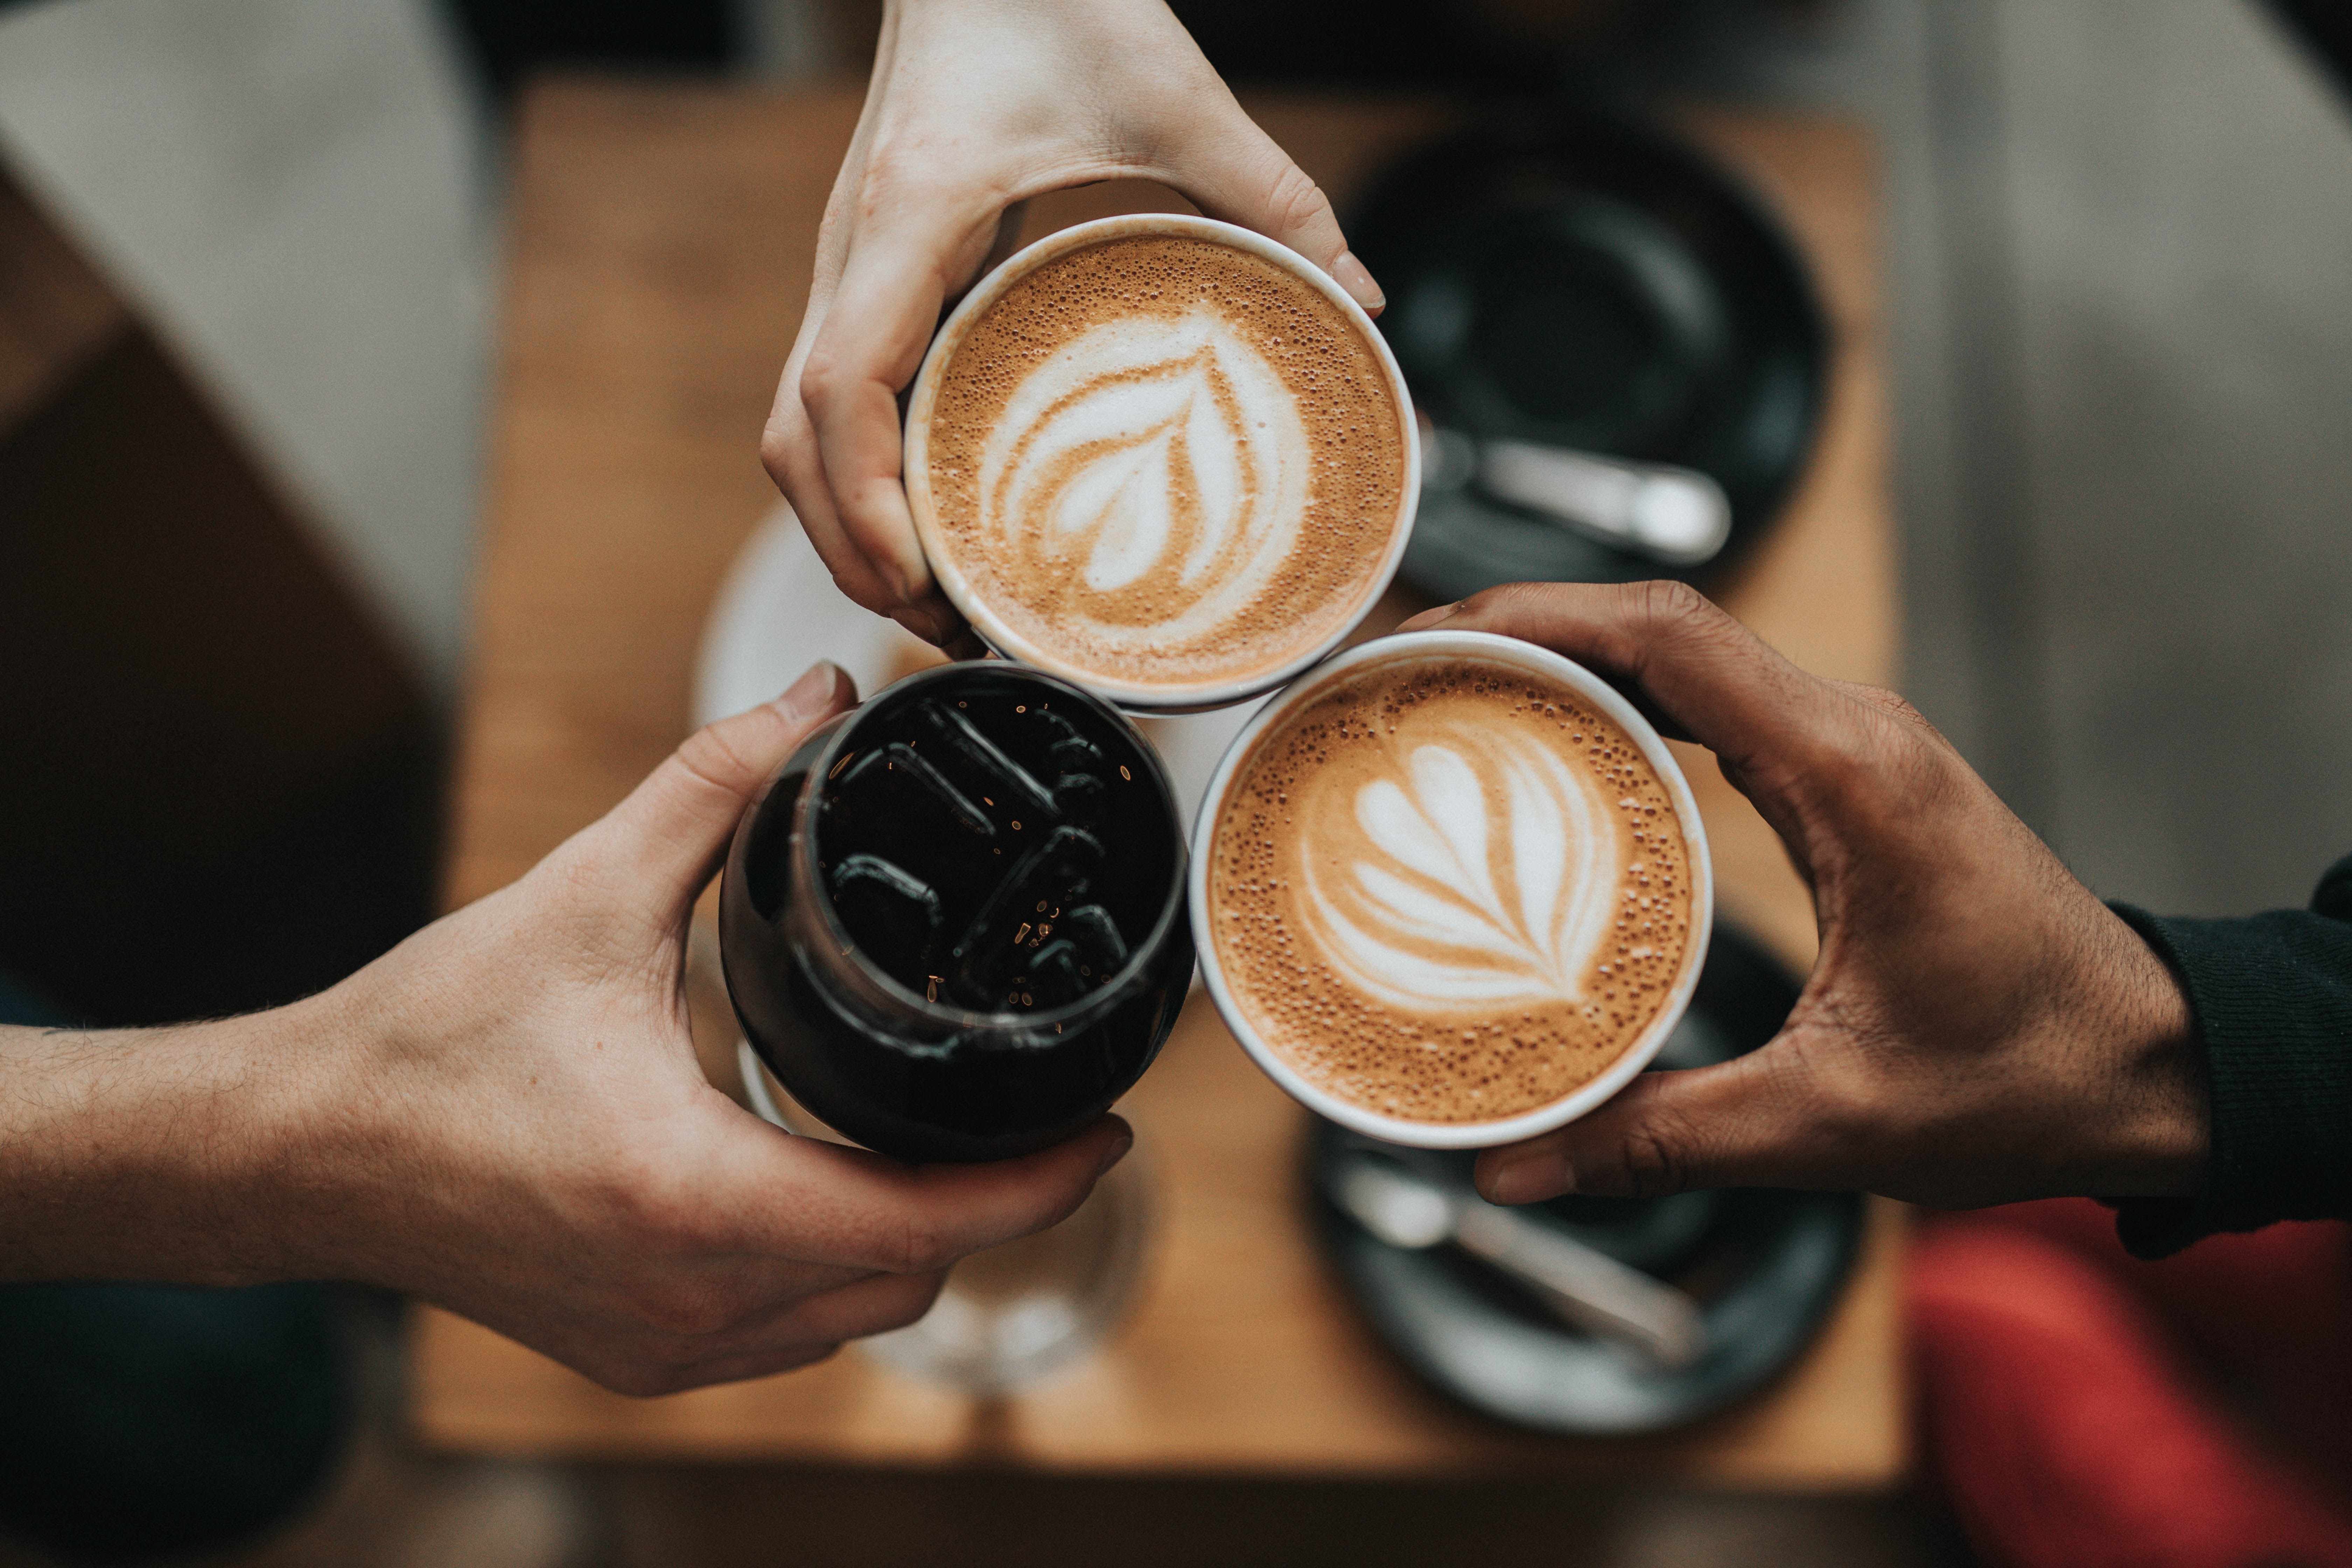 Are there calories in coffee?